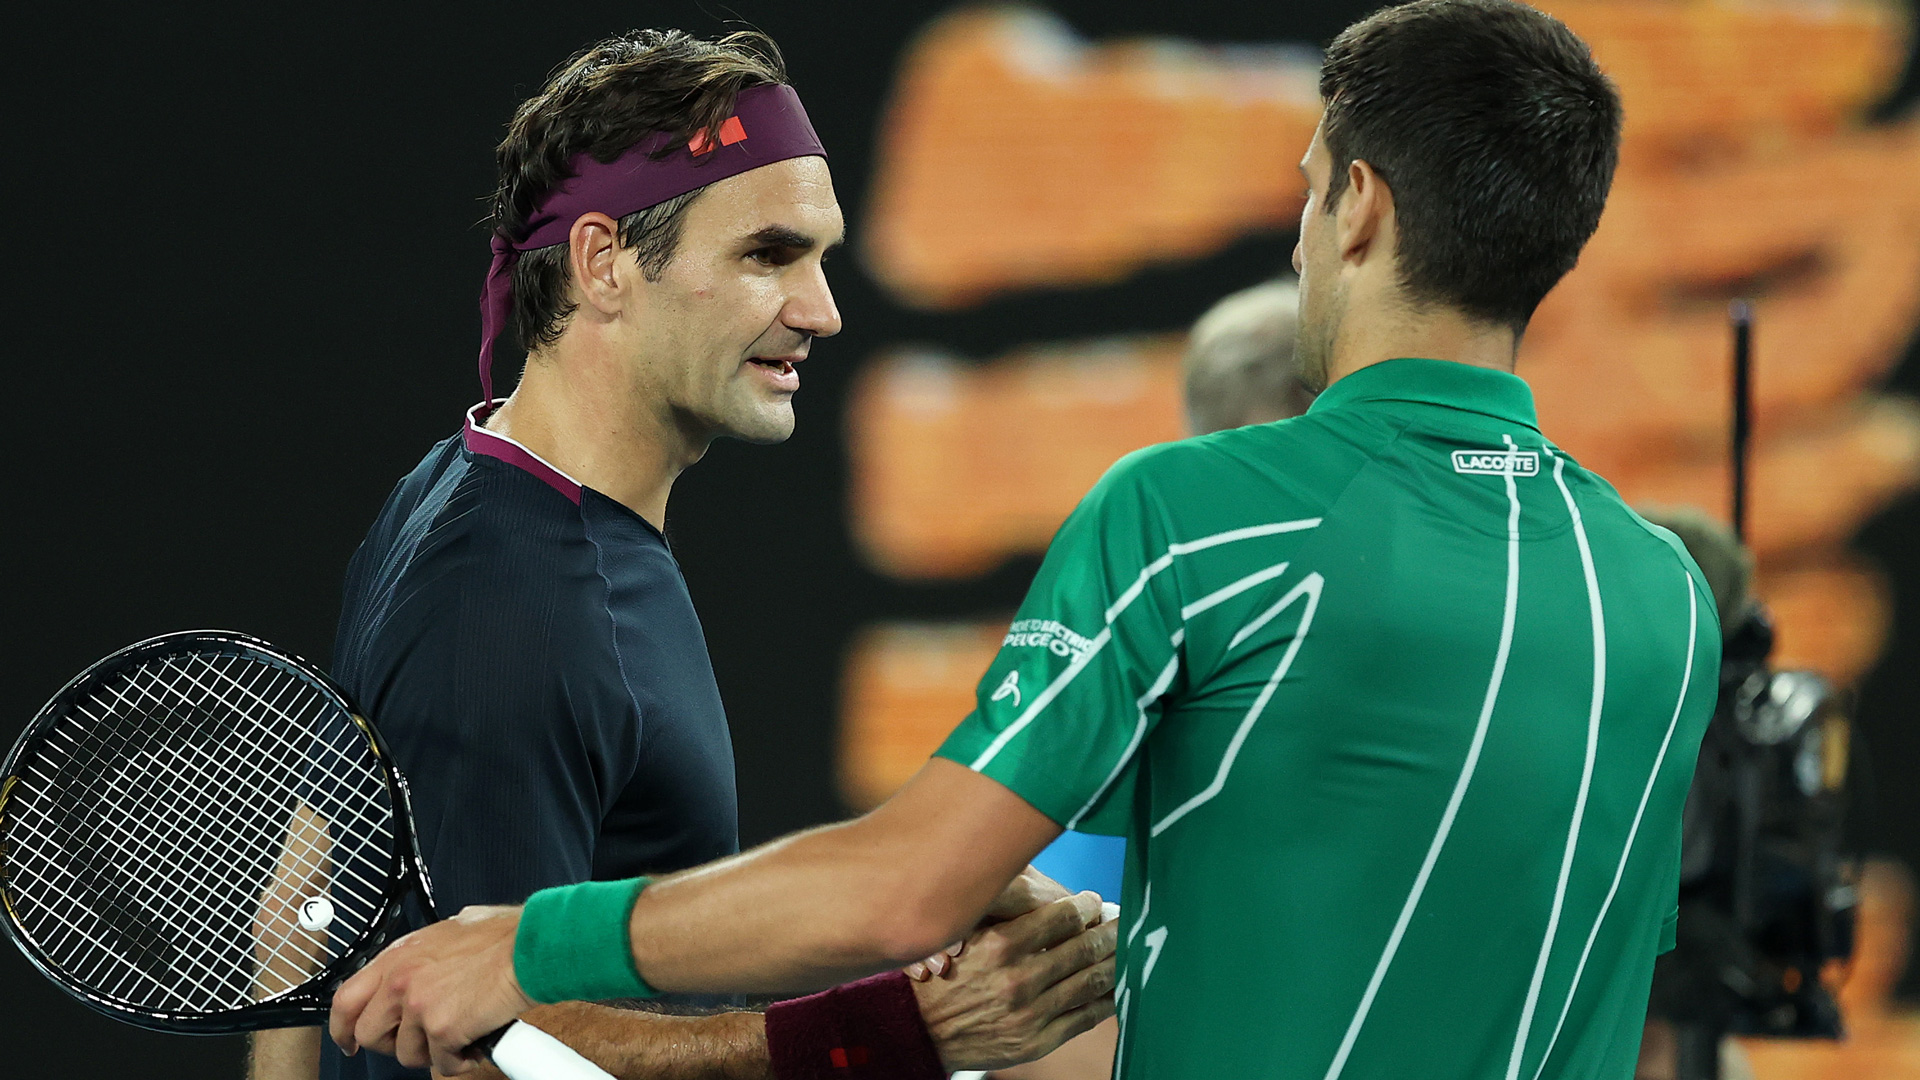 You can't have three good guys – Wawrinka and Djokovic discuss Federer, Nadal support